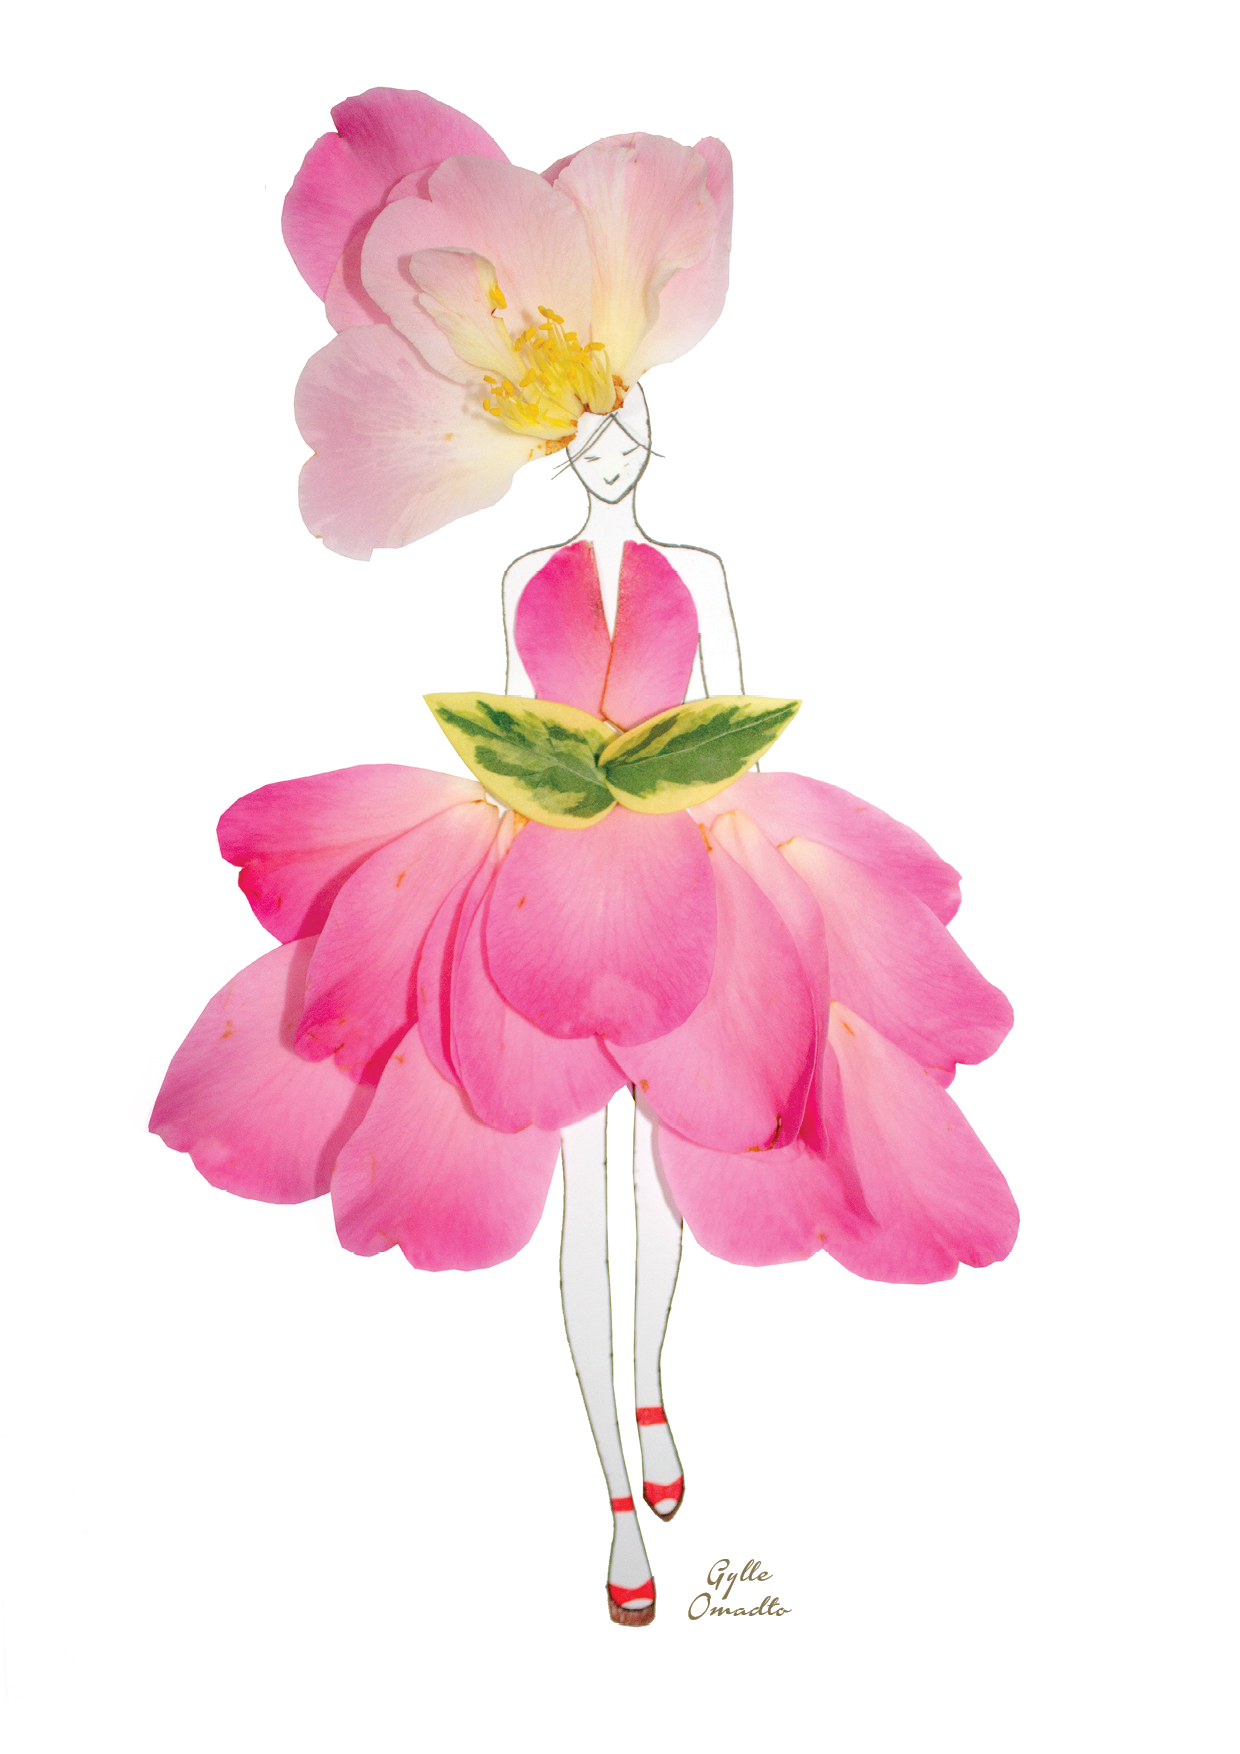 Fashion Illustrations With Real Flower Petals As Clothing ...